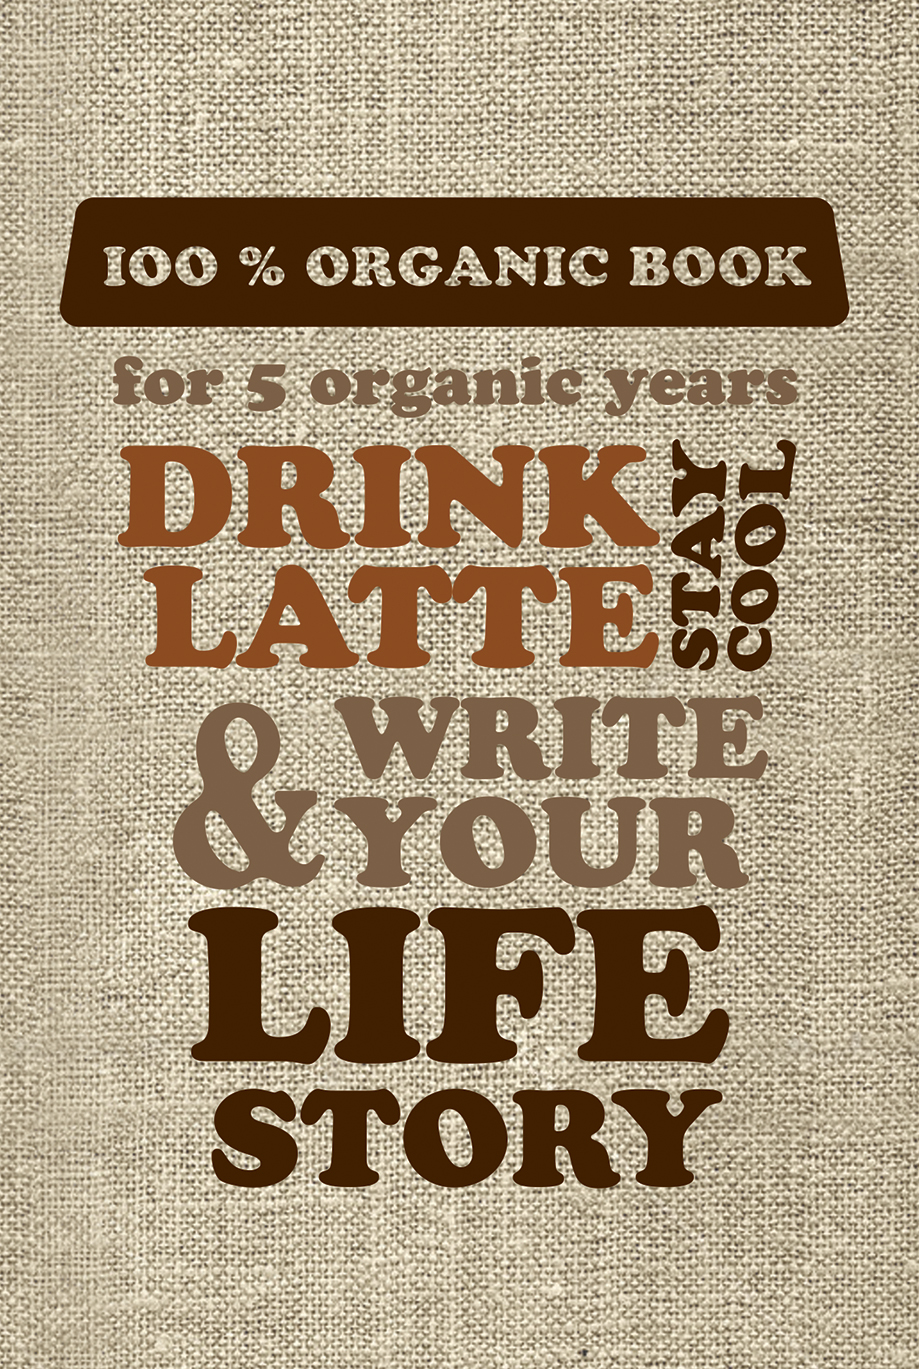 DRINK LATTE & WRITE YOUR LIFE STORY (мешковина) - страница 0